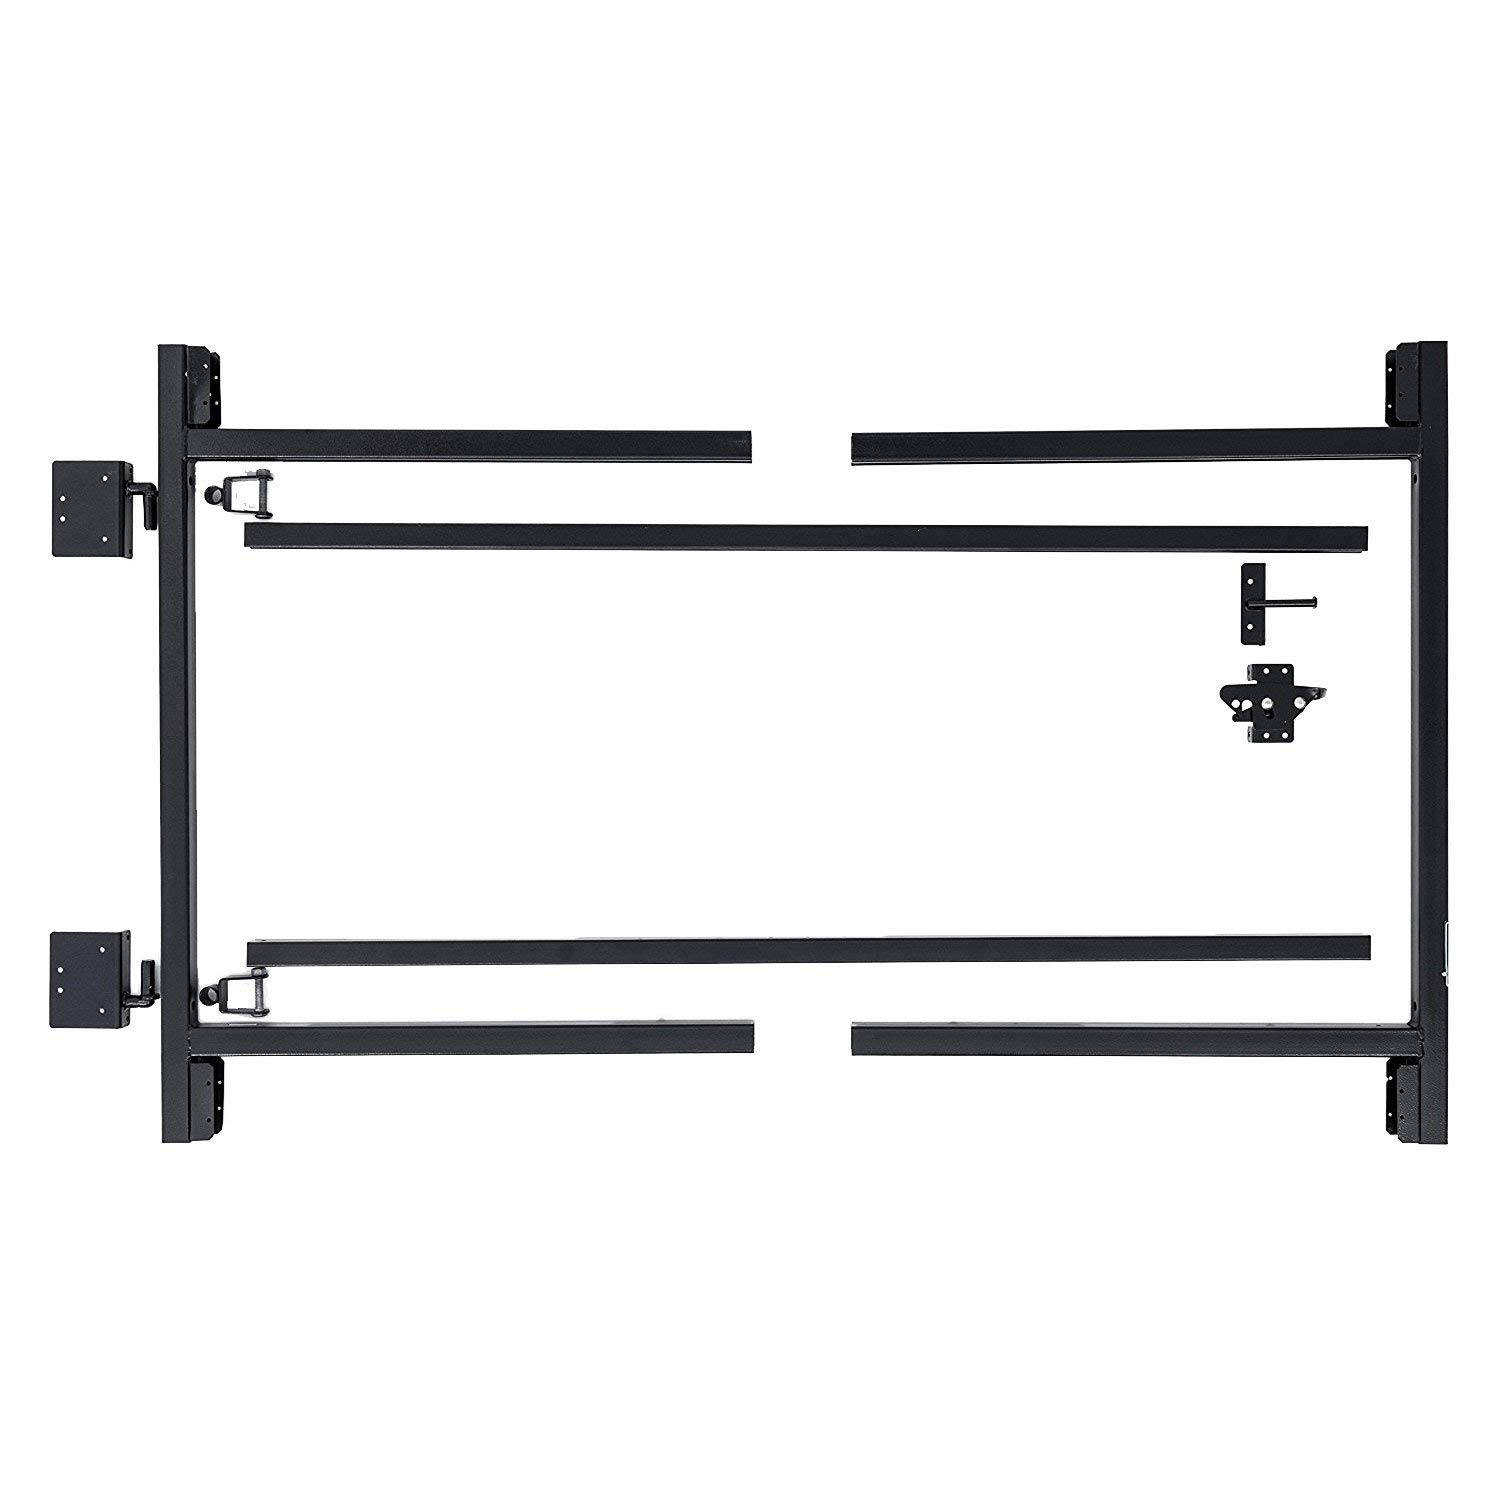 Adjust-A-Gate Steel Frame Gate Building Kit, 60''-96'' Wide Opening Up to 4' High (2 Pack) by Adjust-A-Gate (Image #2)